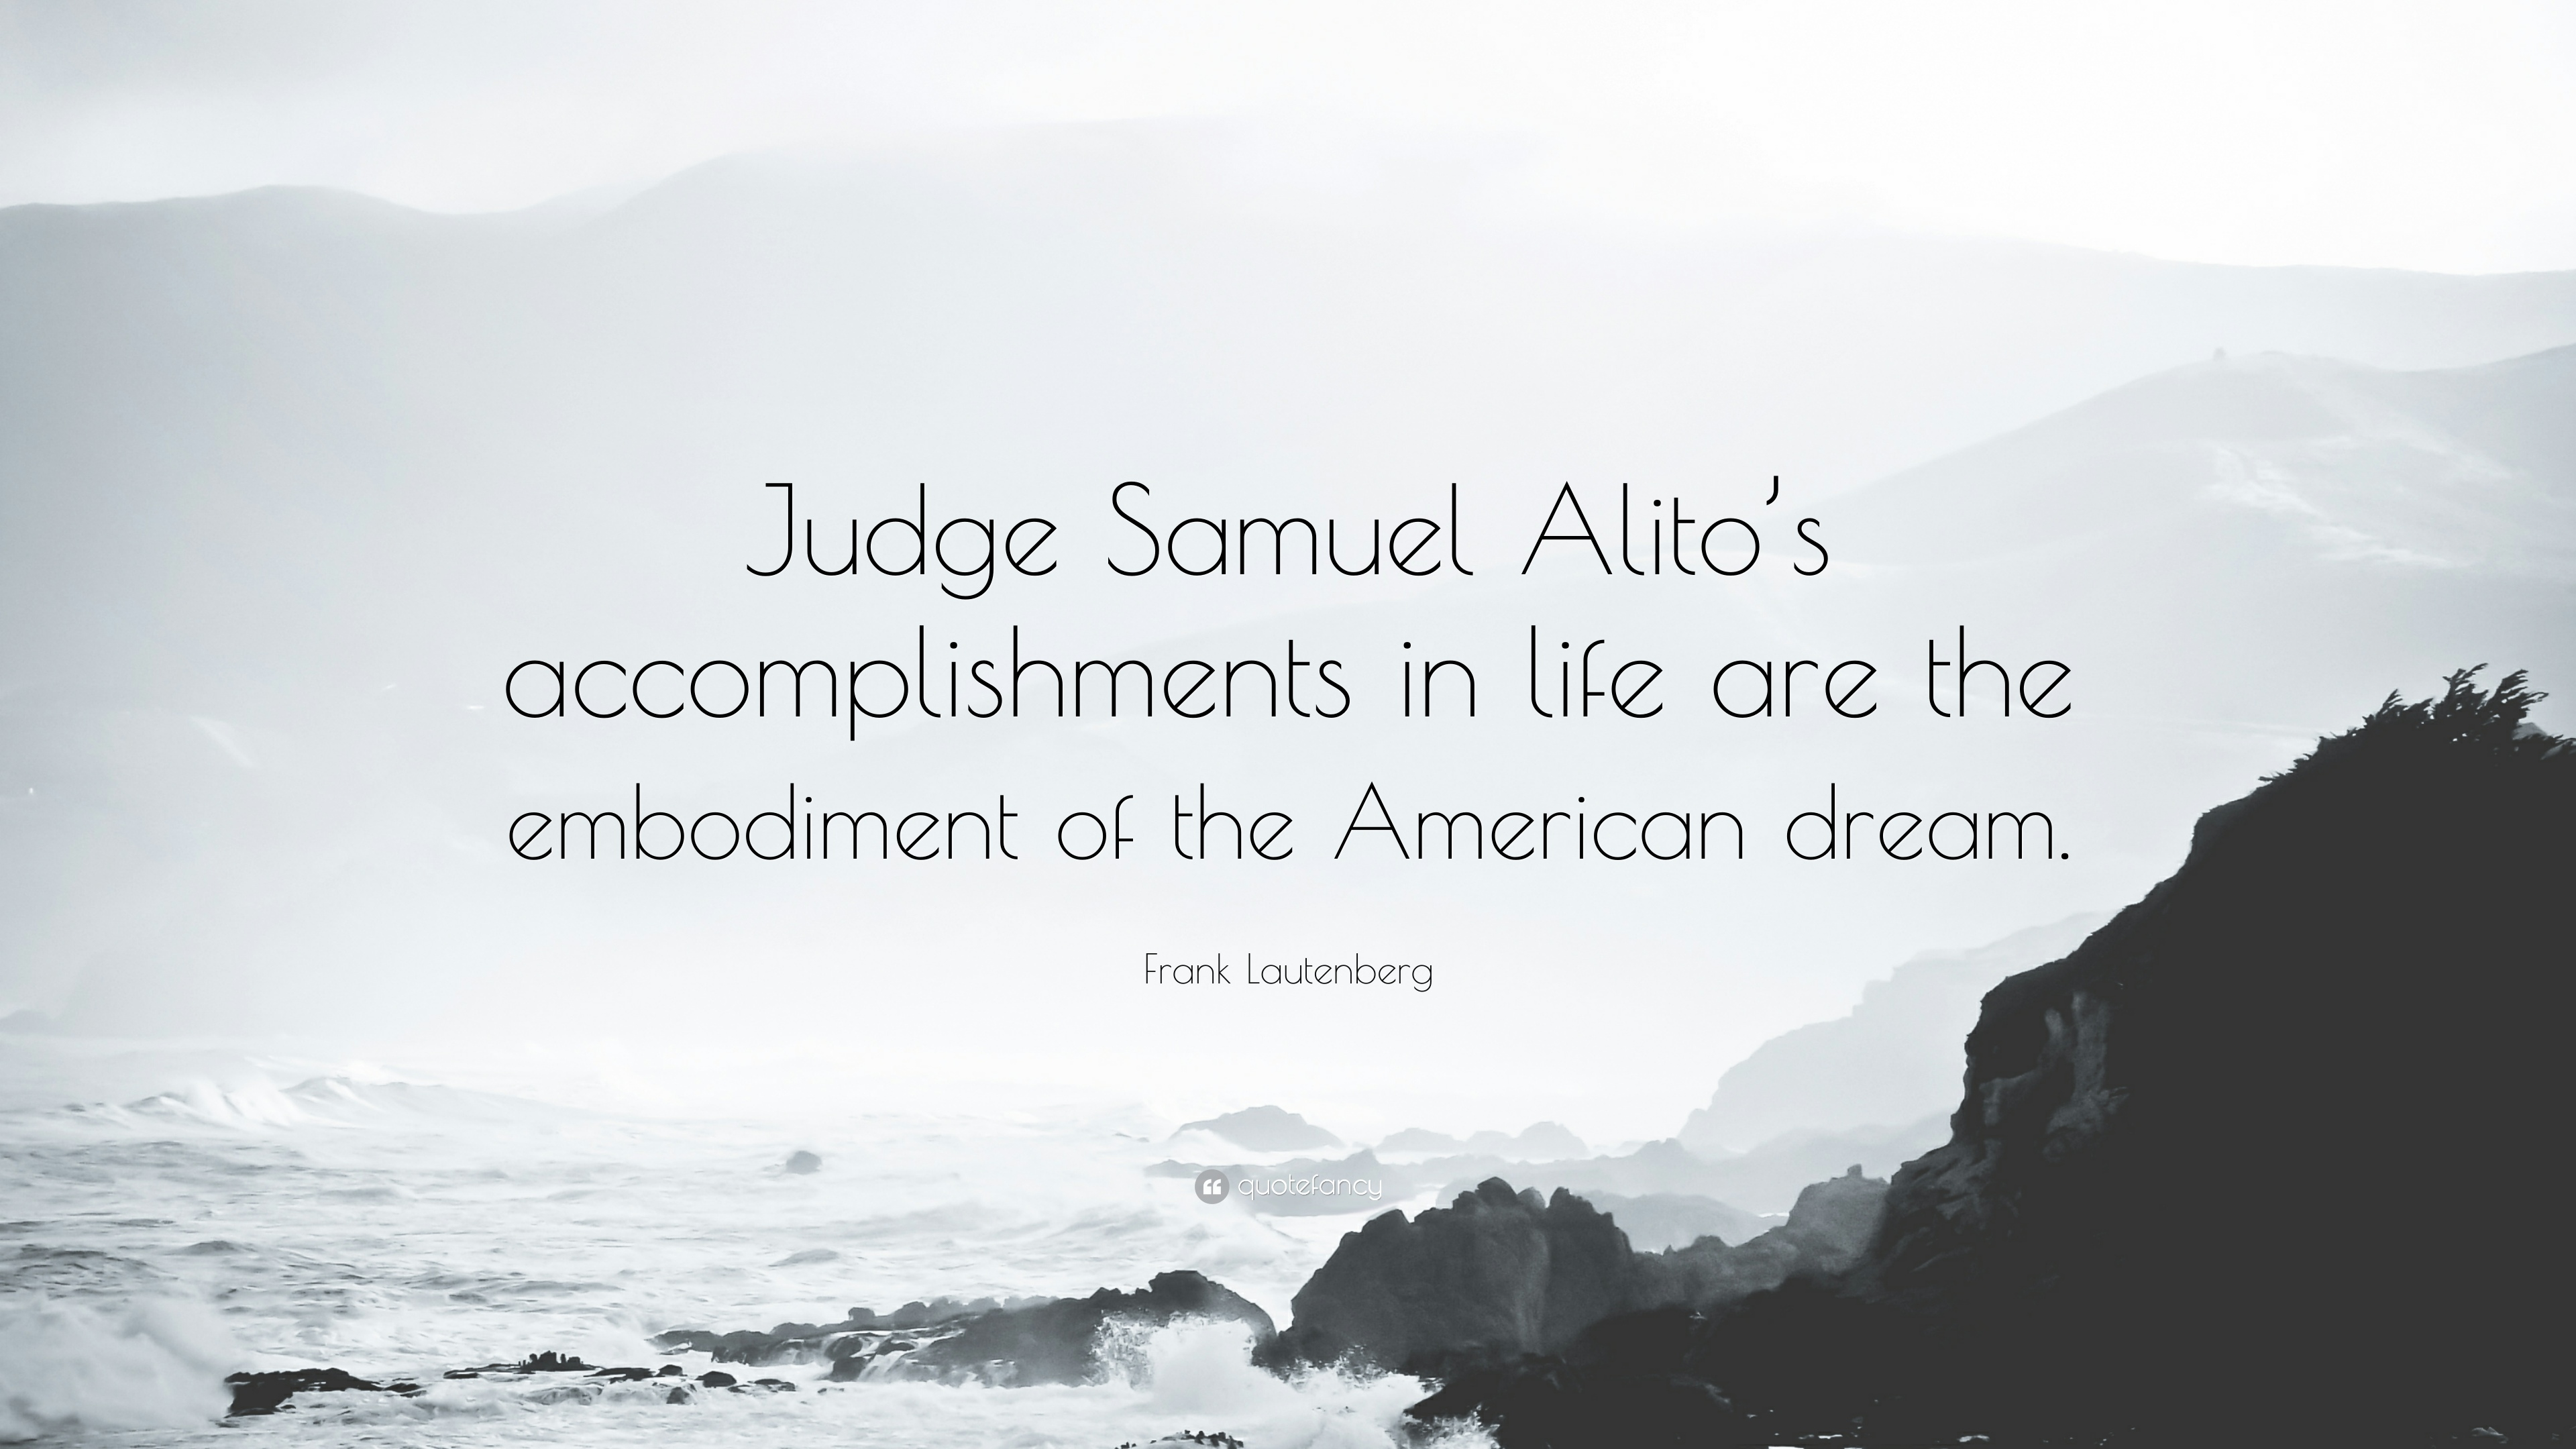 frank lautenberg quotes quotefancy frank lautenberg quote judge samuel alito s accomplishments in life are the embodiment of the